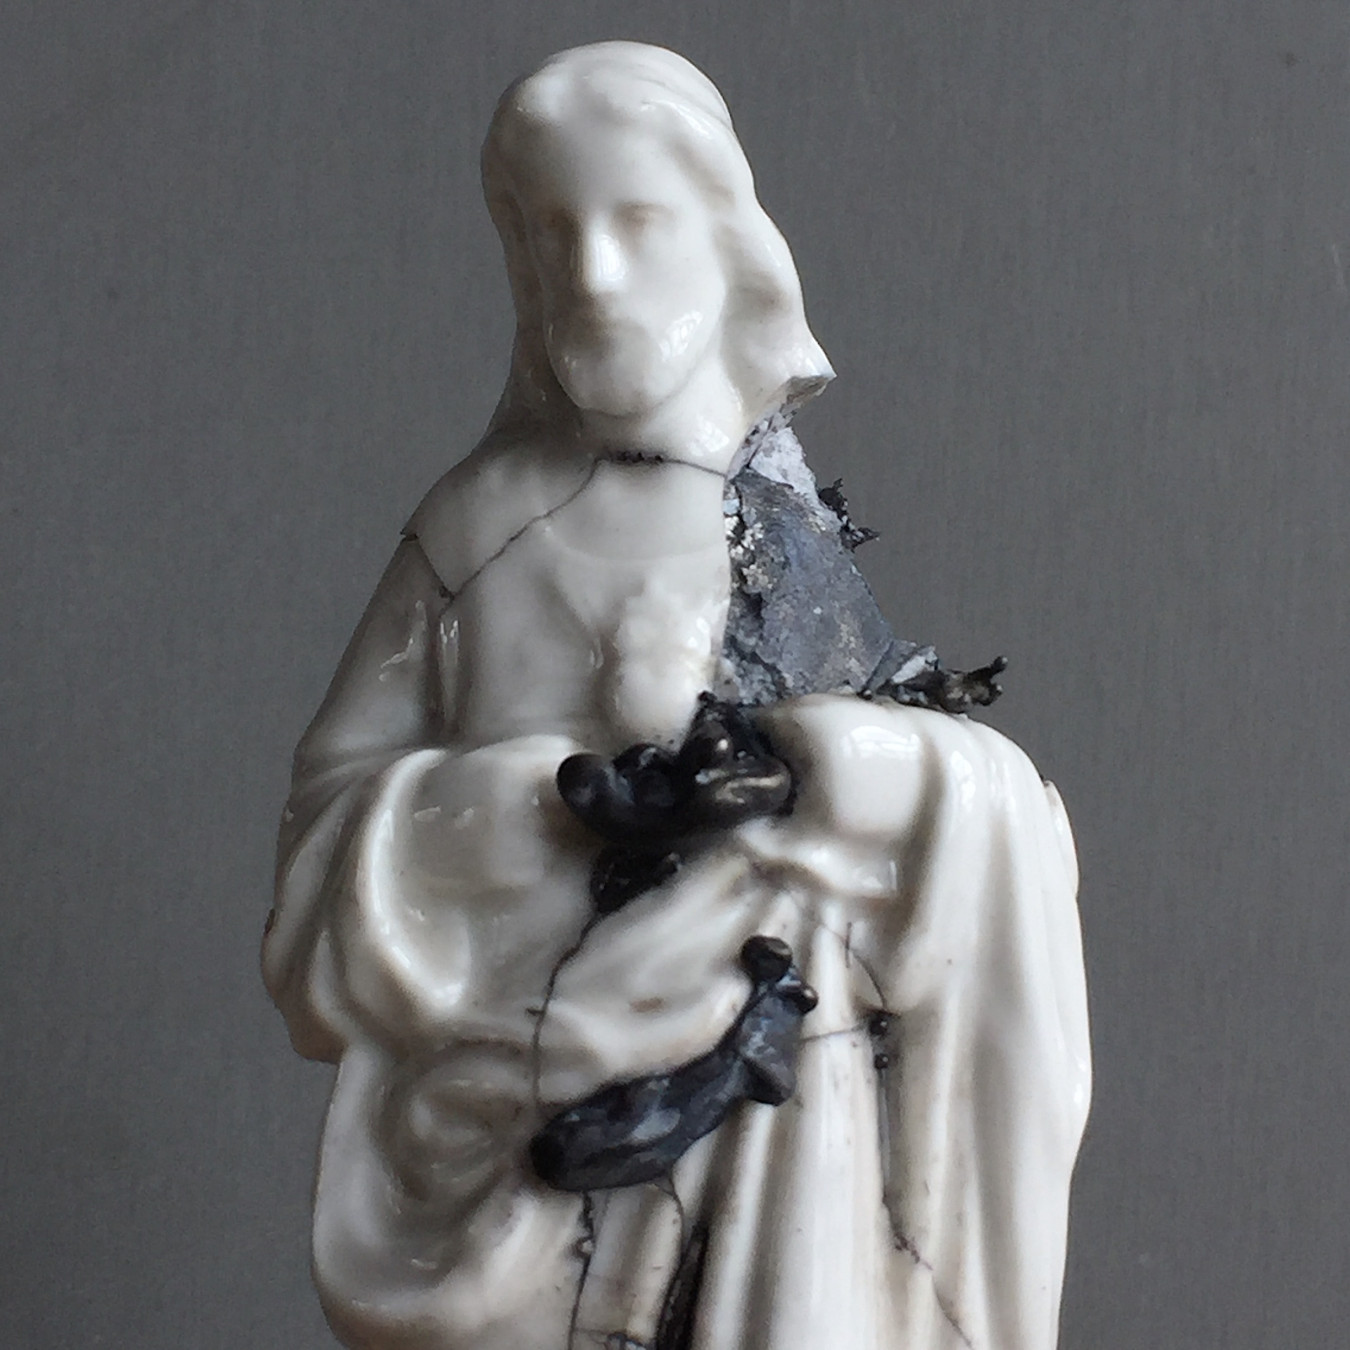 Detailed image of a white ceramic statue of Jesus. Cracked and broken showing an inner core that is patinted black.